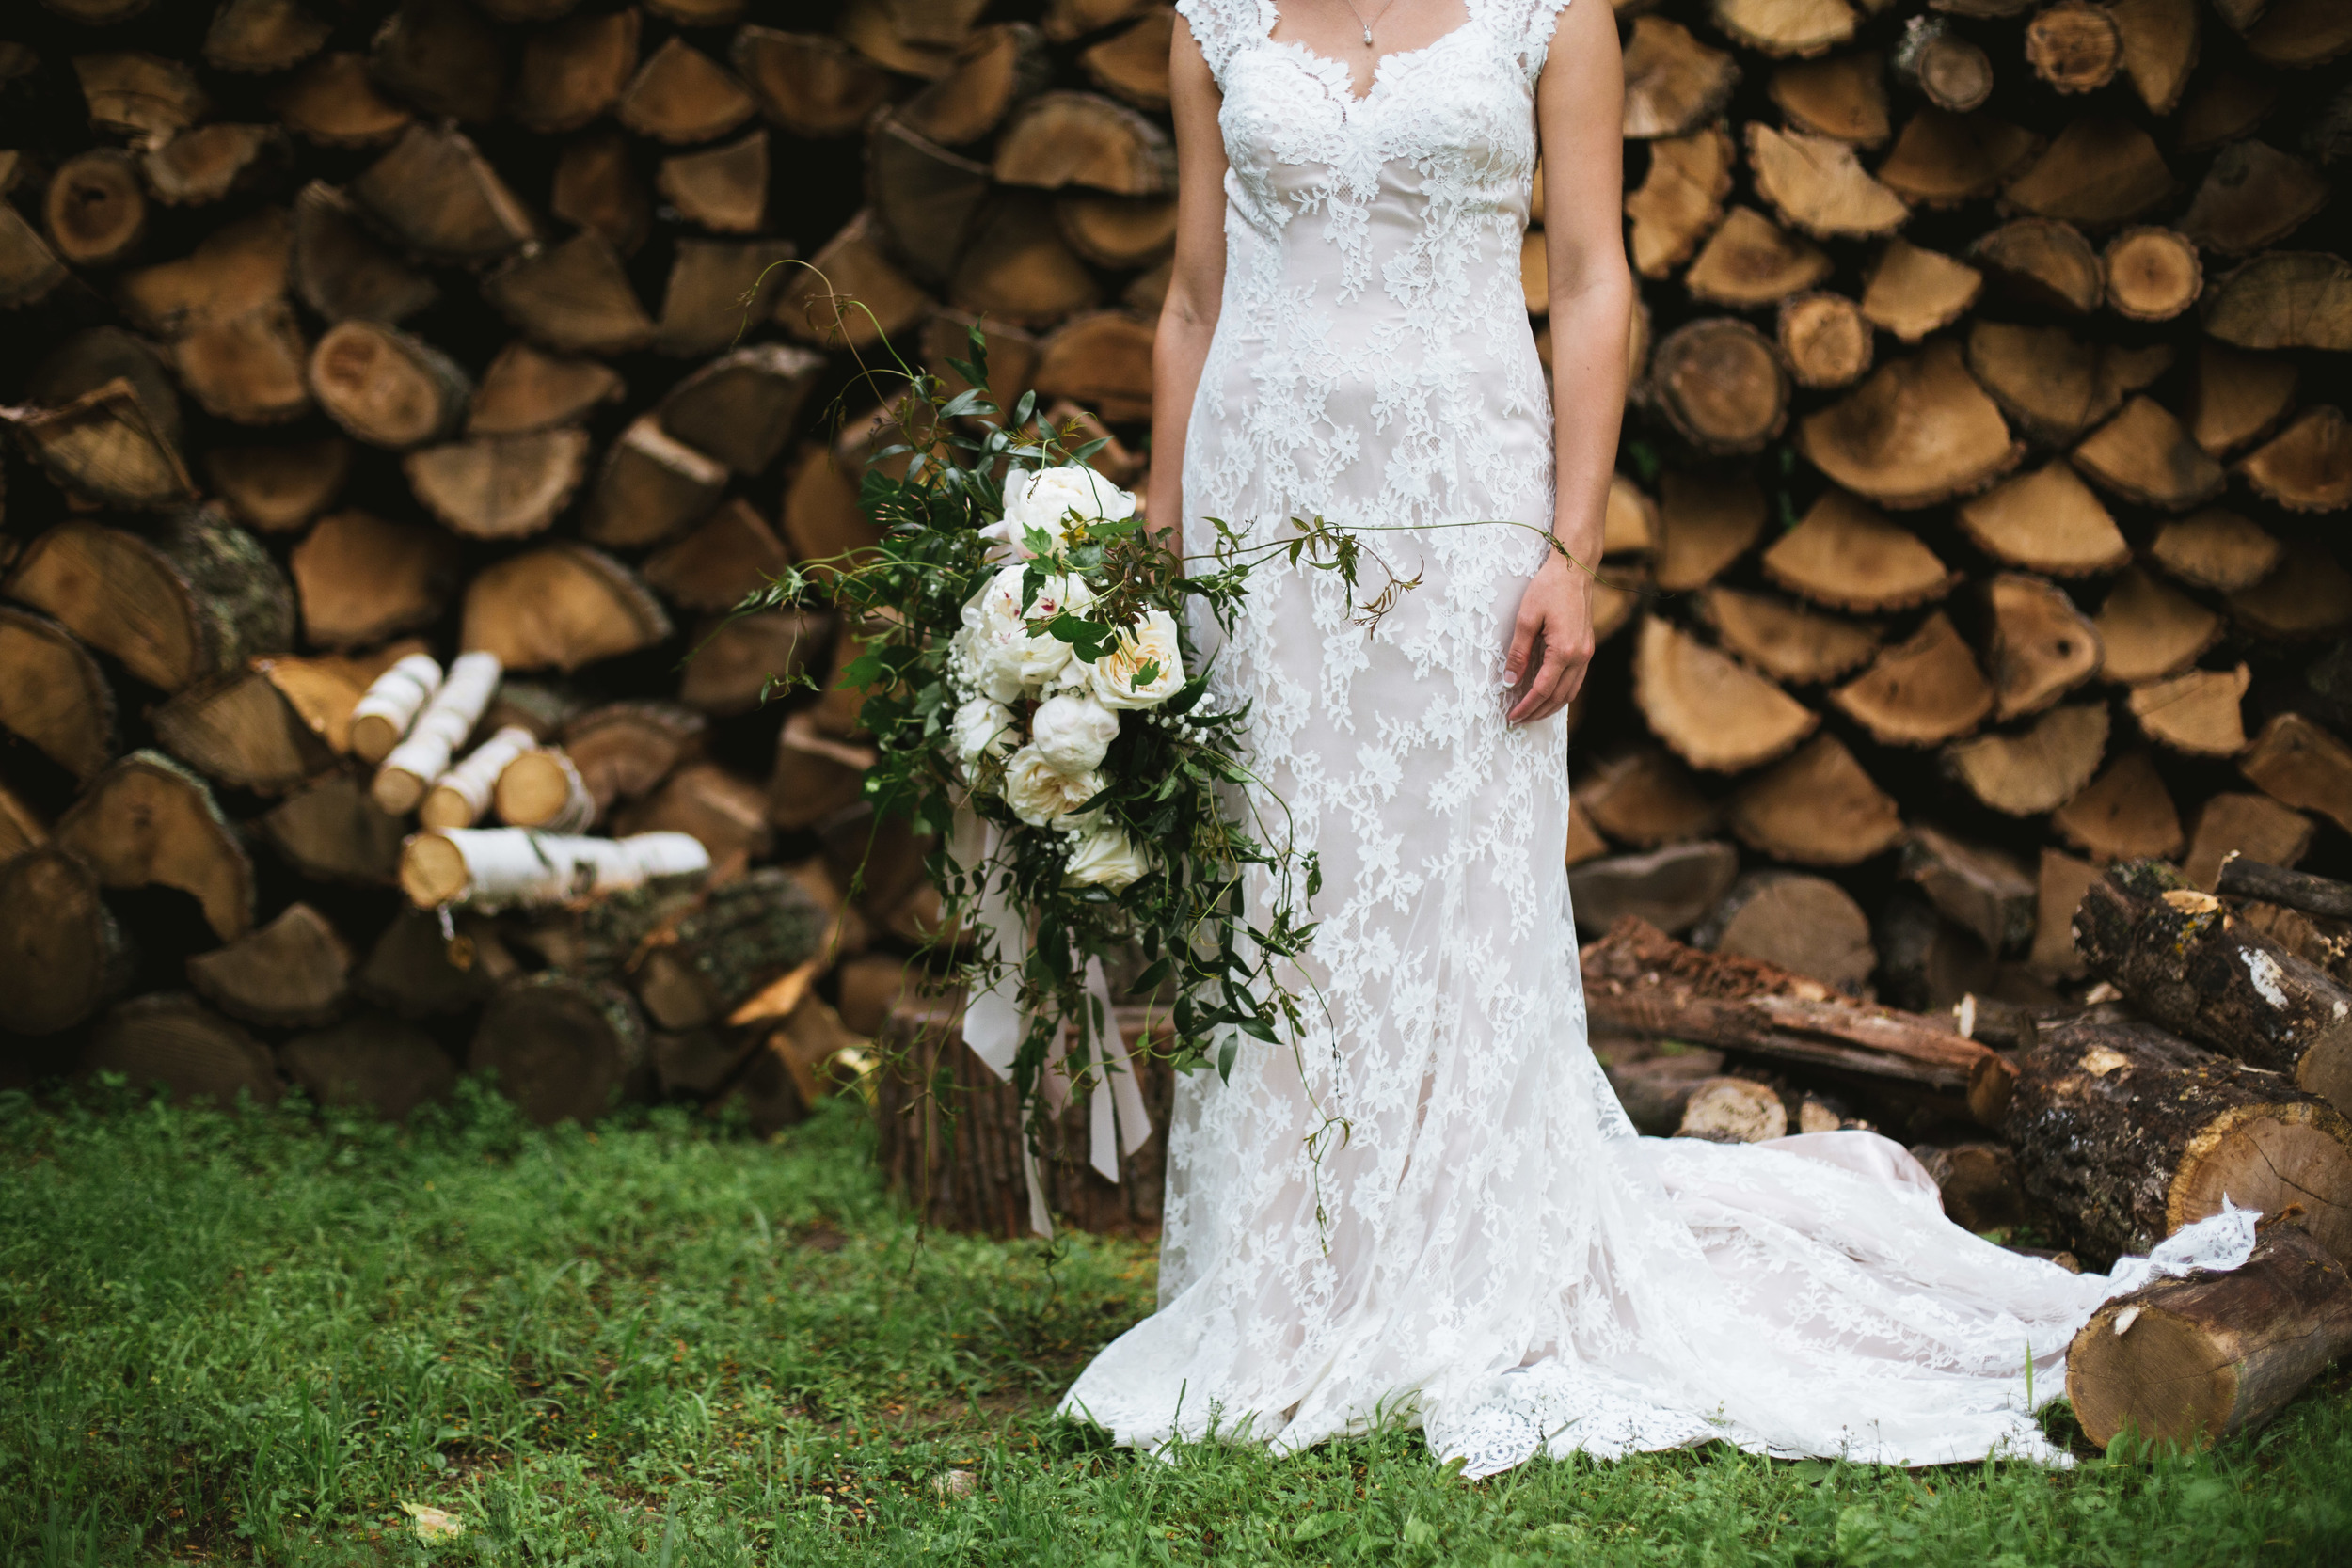 the-bees-knees-floral-sharayah-krautkremer-brainerd-mn-minnesota-wedding-florist-bride-flowers-peony-garden-rose-ivy-babys-breath-bouquet